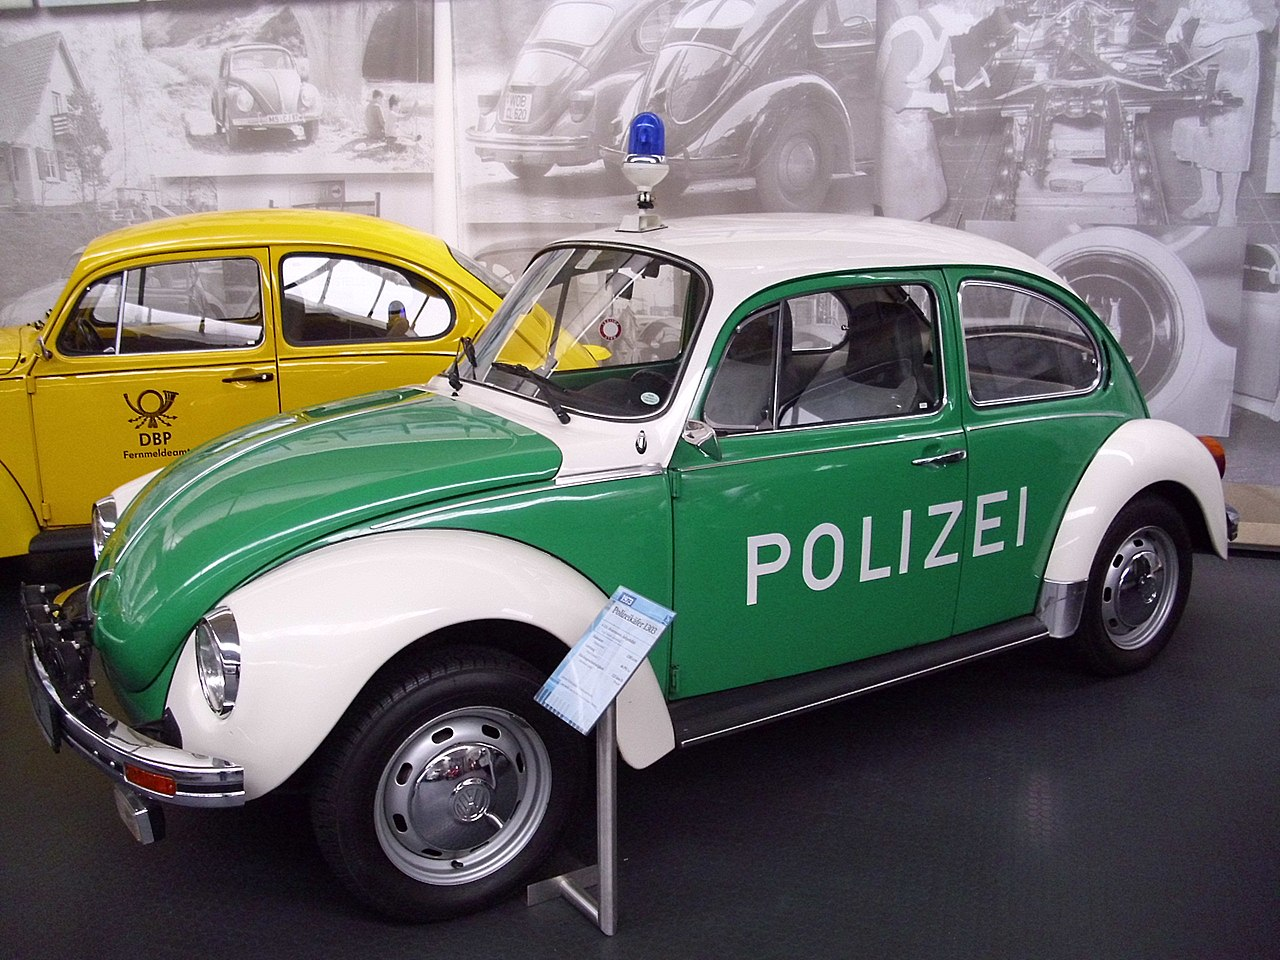 file vw kaefer 1303 polizei jpg wikimedia commons. Black Bedroom Furniture Sets. Home Design Ideas